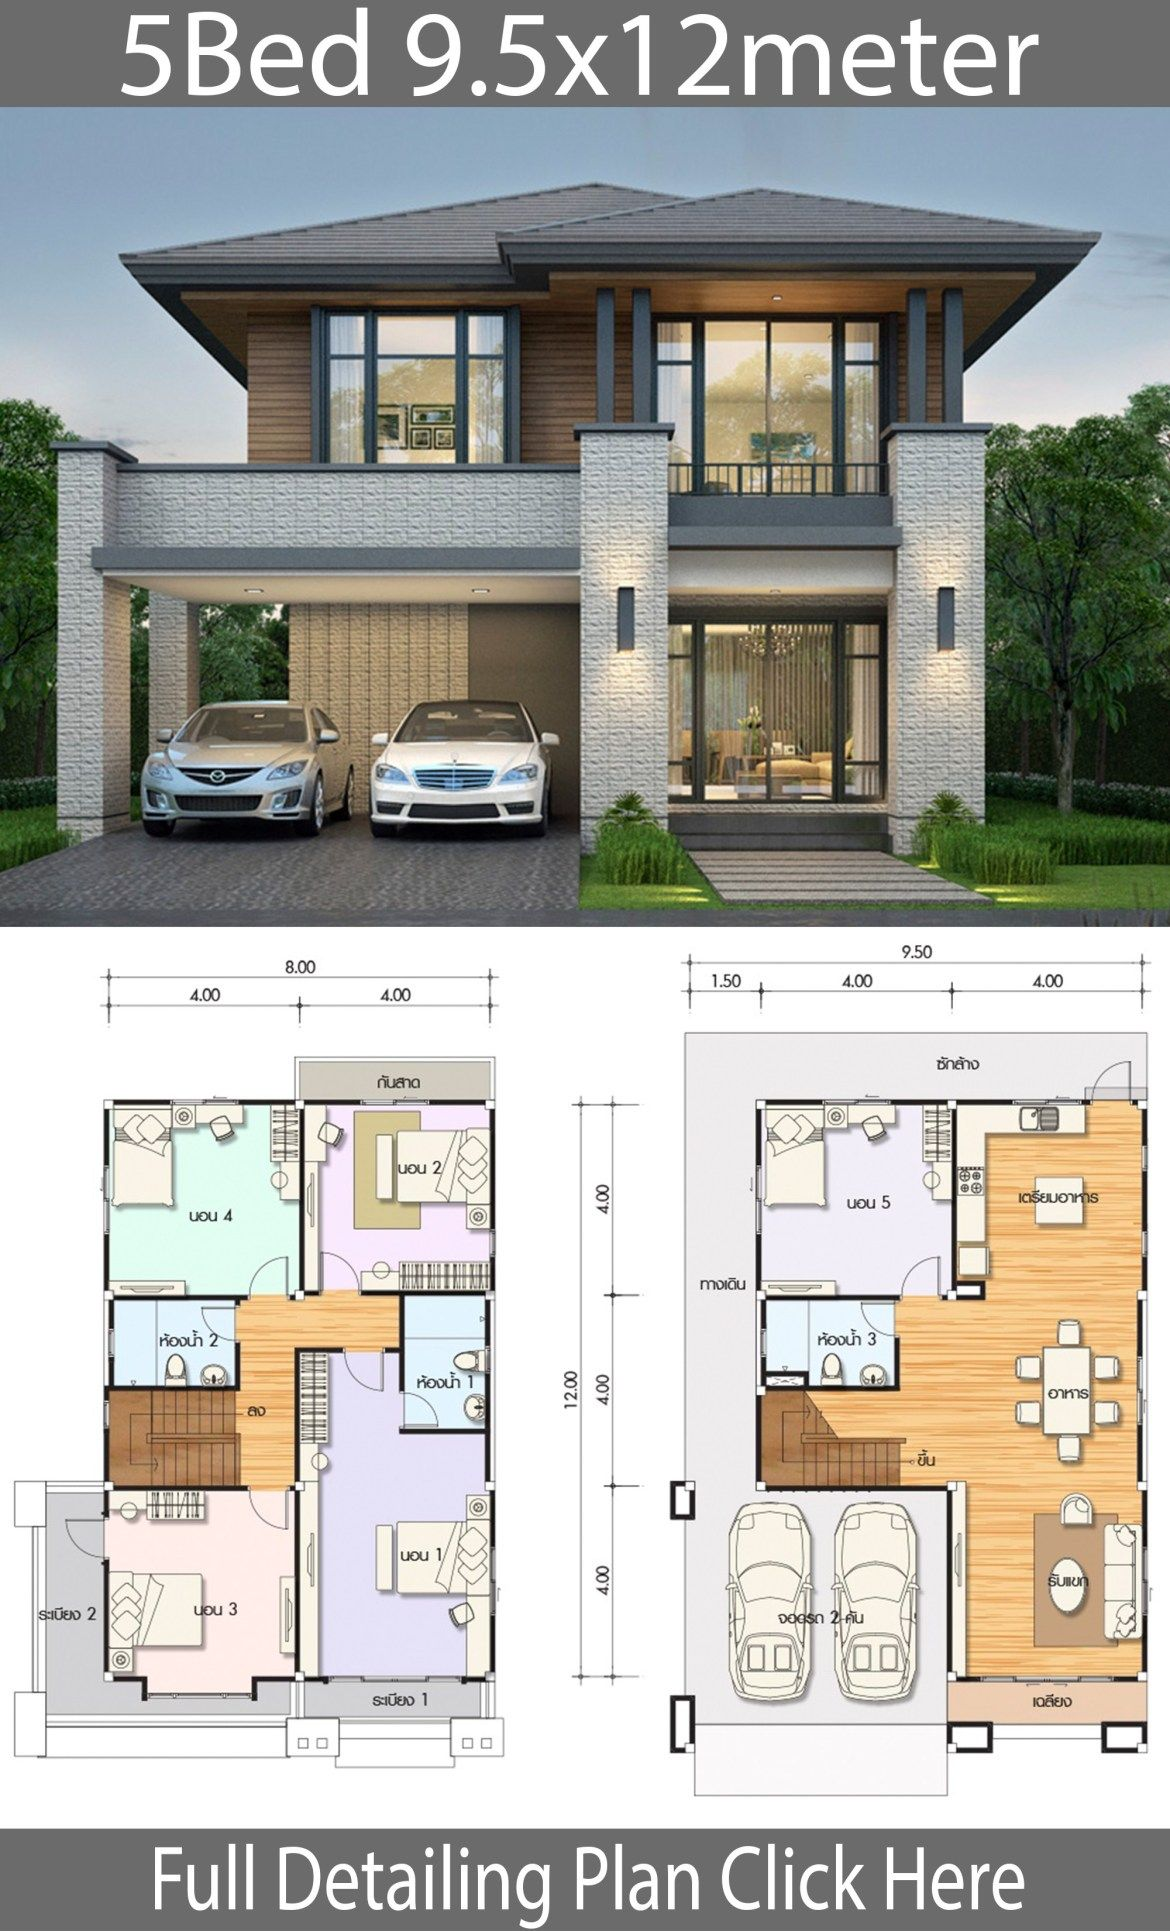 House design plan 9 5x12m with 5 bedrooms is part of Home design plans - House design plan 9 5x12m with 5 bedrooms  Style garden HouseNumber of floors 2 storey housebedroom 5 roomstoilet 3 roomsmaid's room